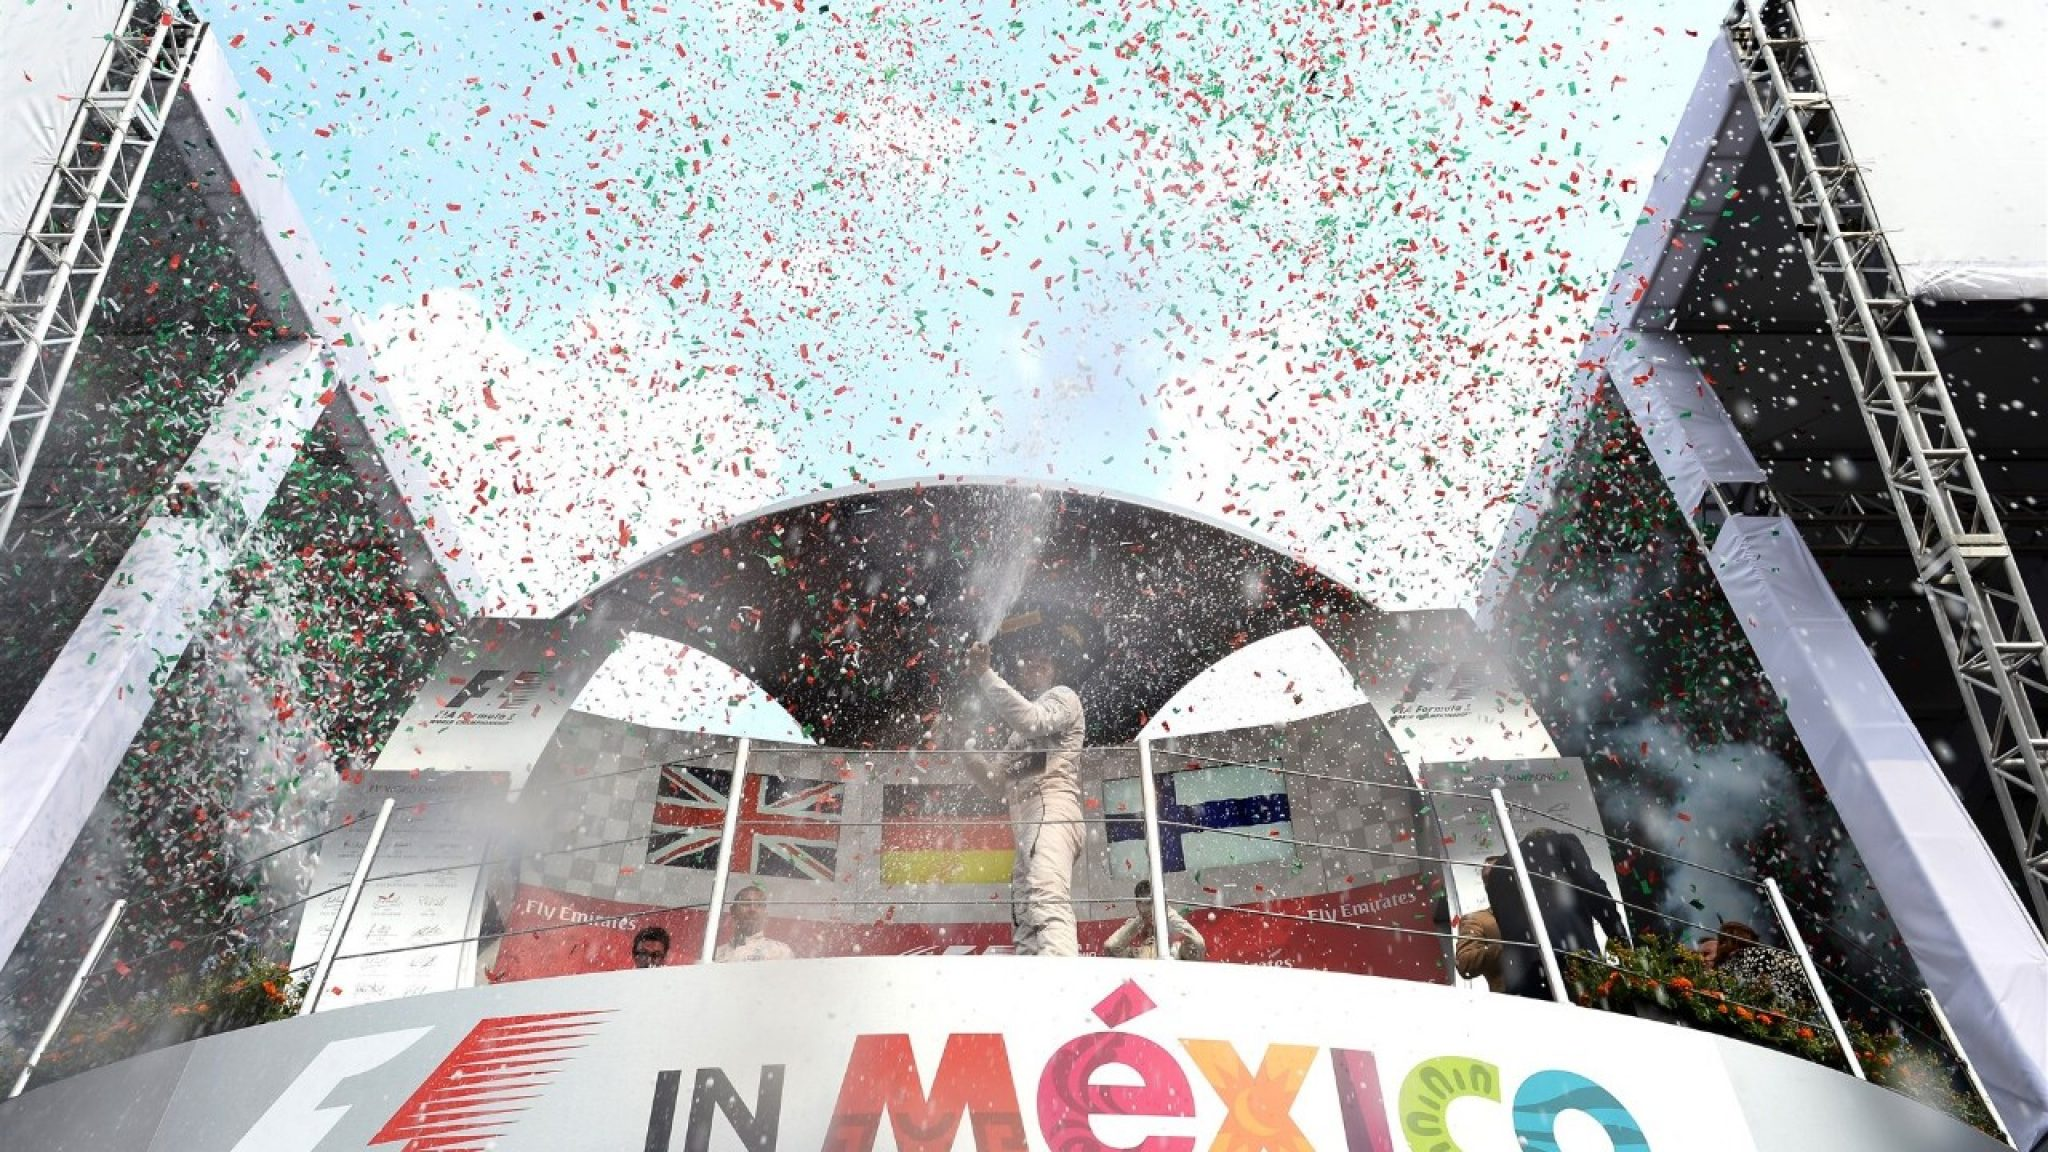 Winners of the Mexico Grand Prix